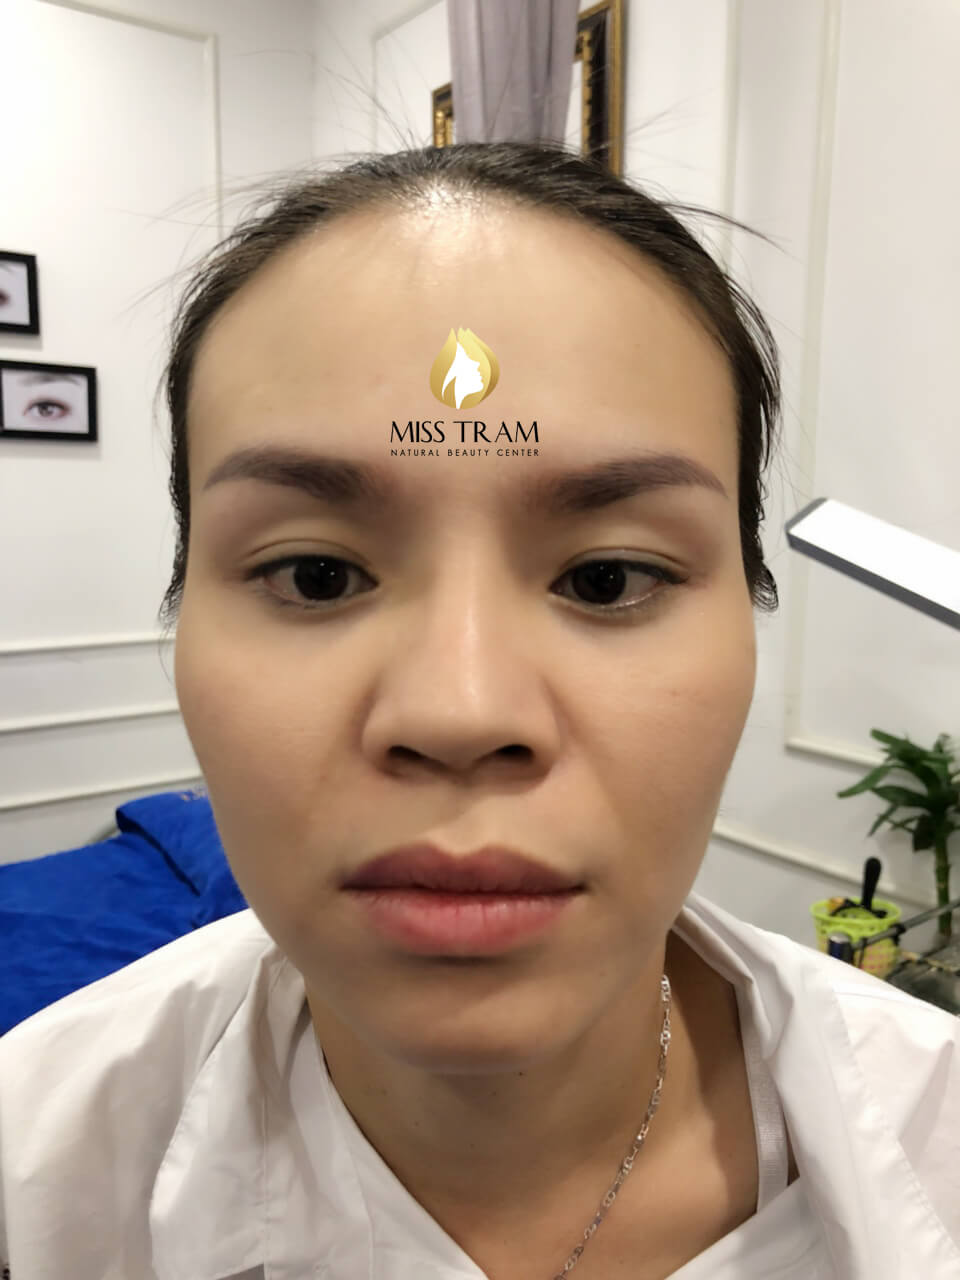 Before and After Results of Old Eyebrow Treatment, Superfine Powder Spraying 2